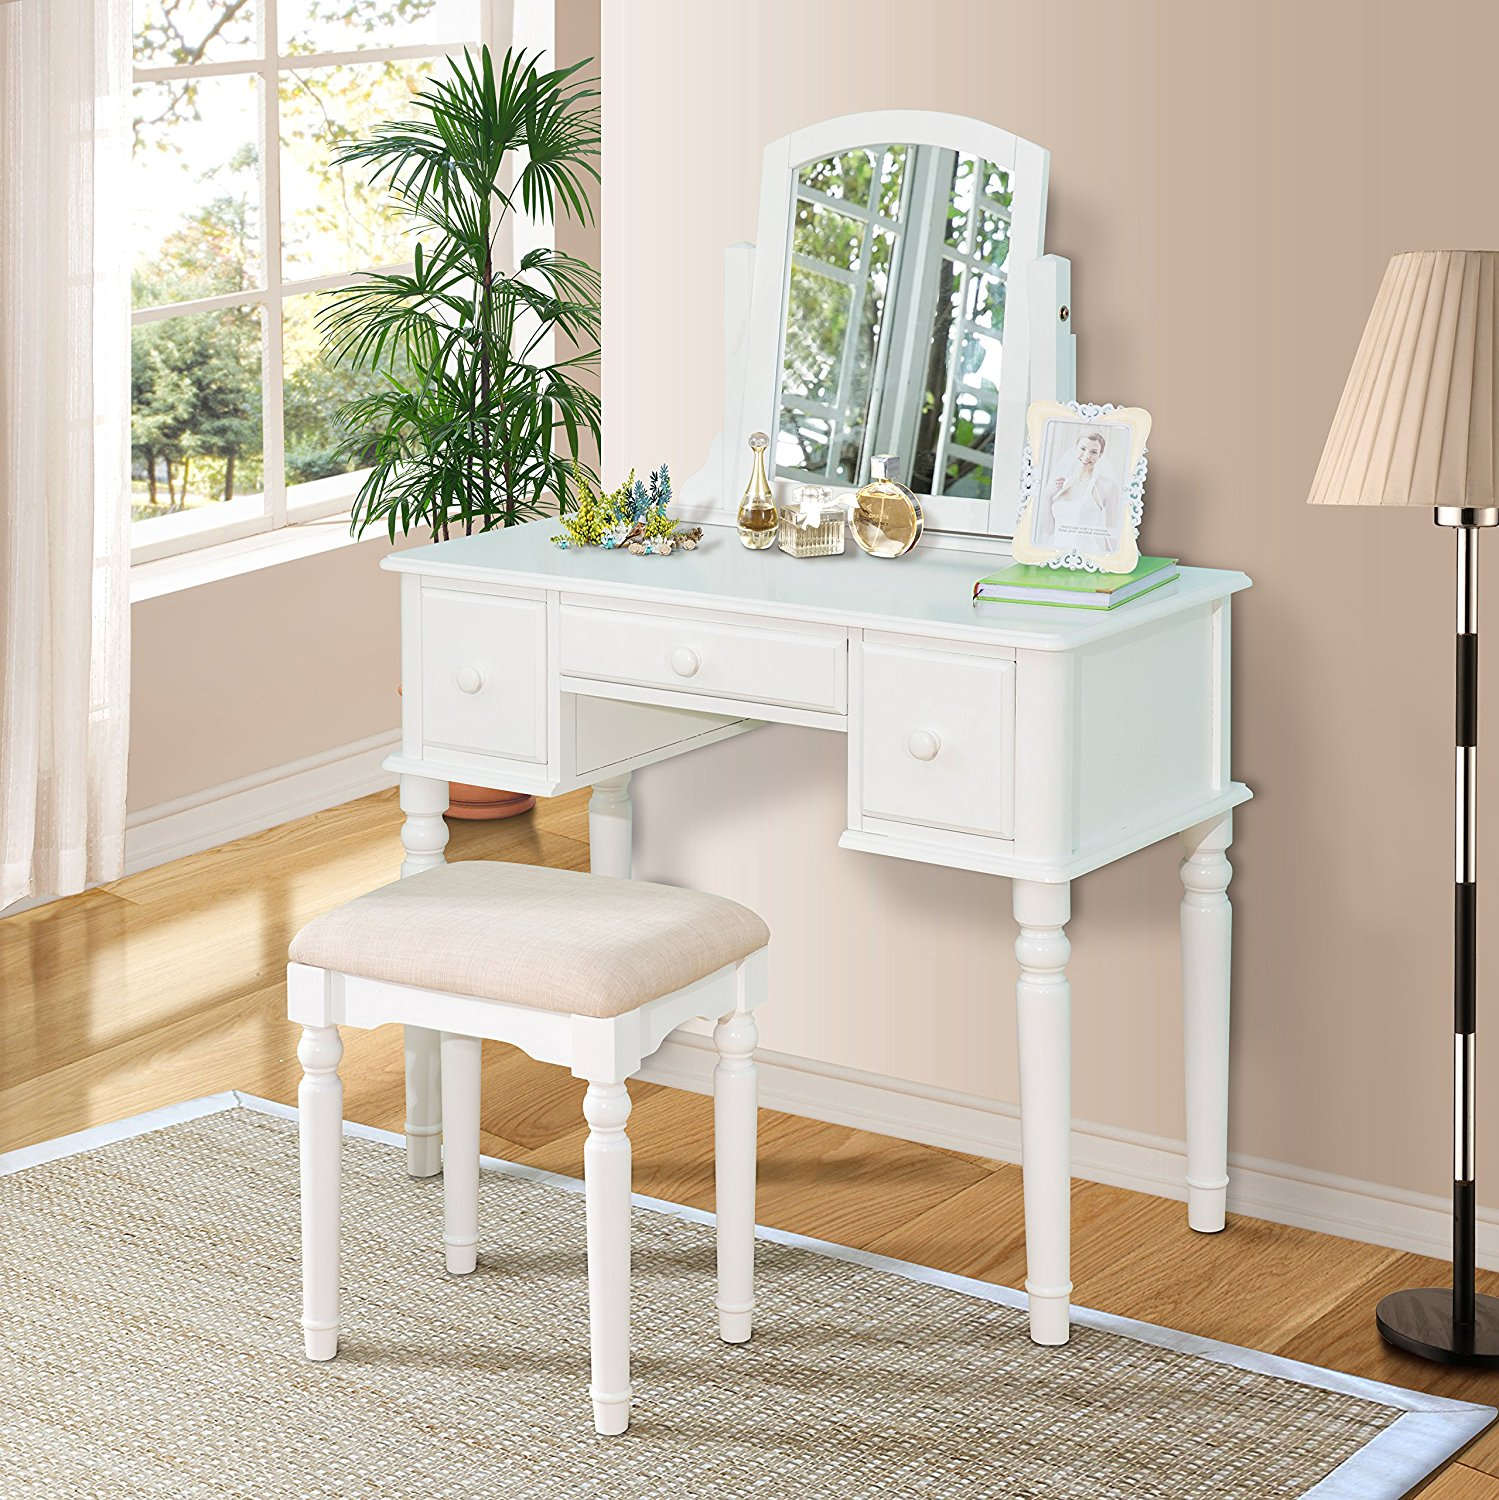 Harper&Bright Designs Wood Vanity Table Set with Mirror and Stool (White)